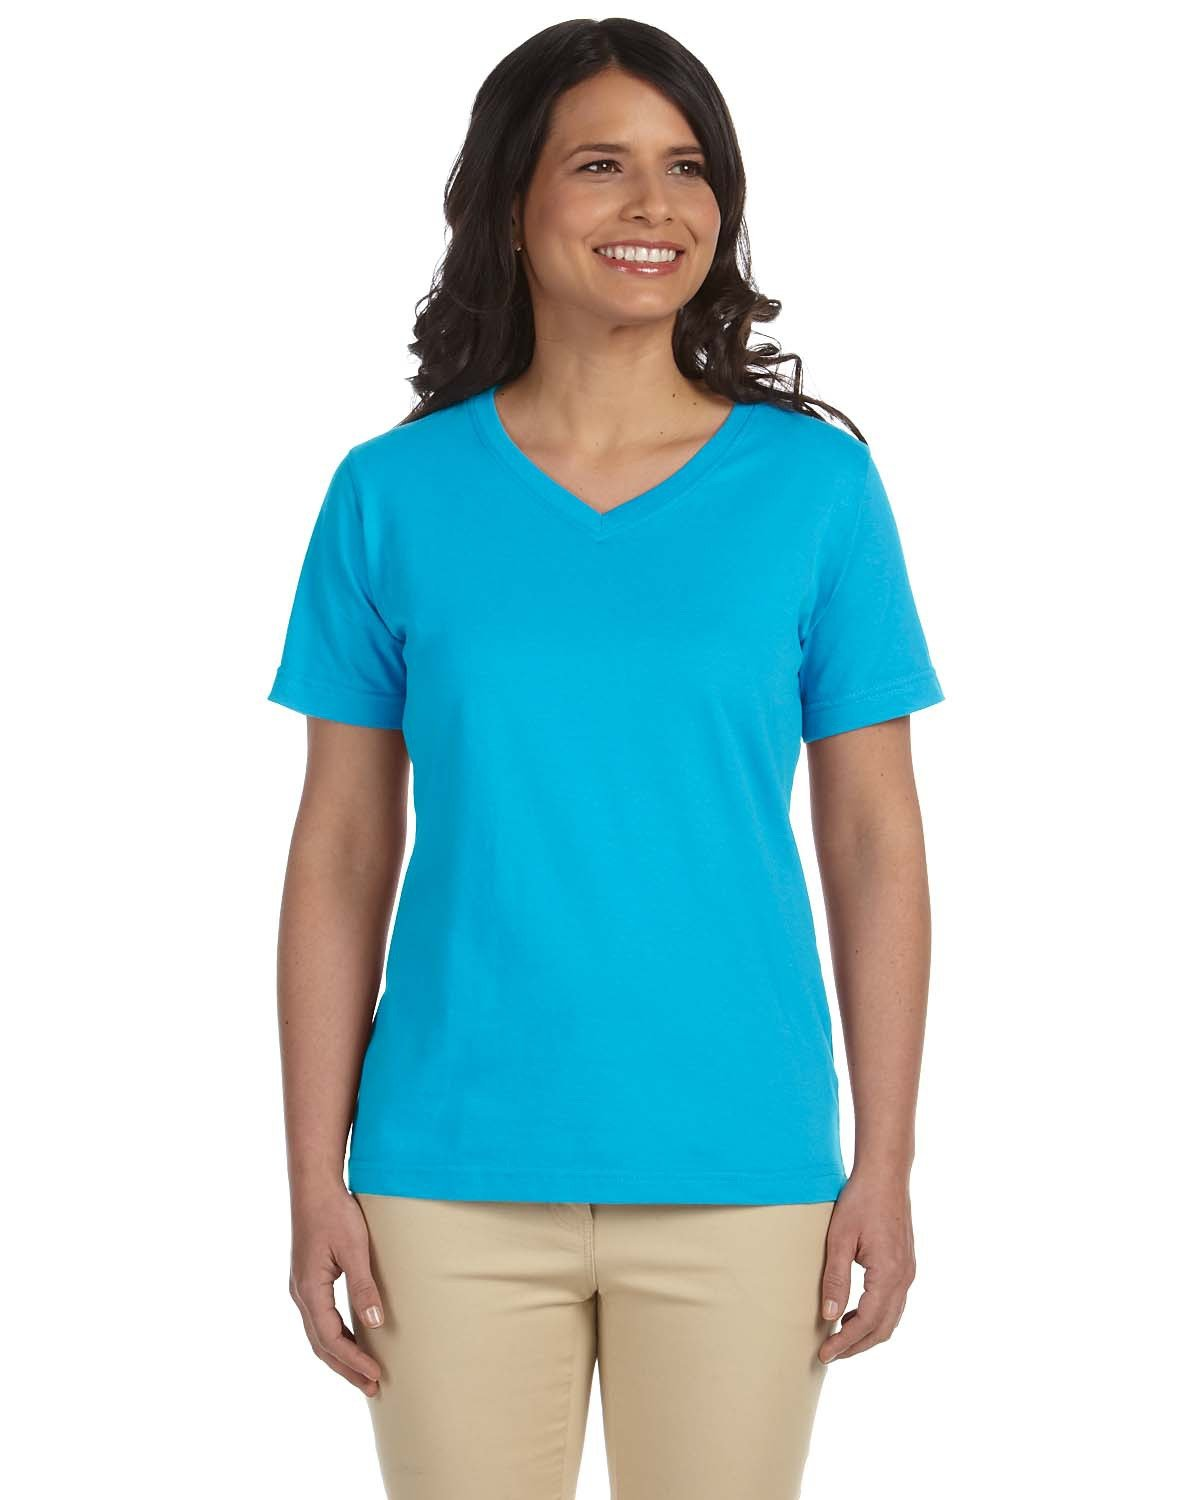 LAT Ladies' Premium Jersey V-Neck T-Shirt AQUA